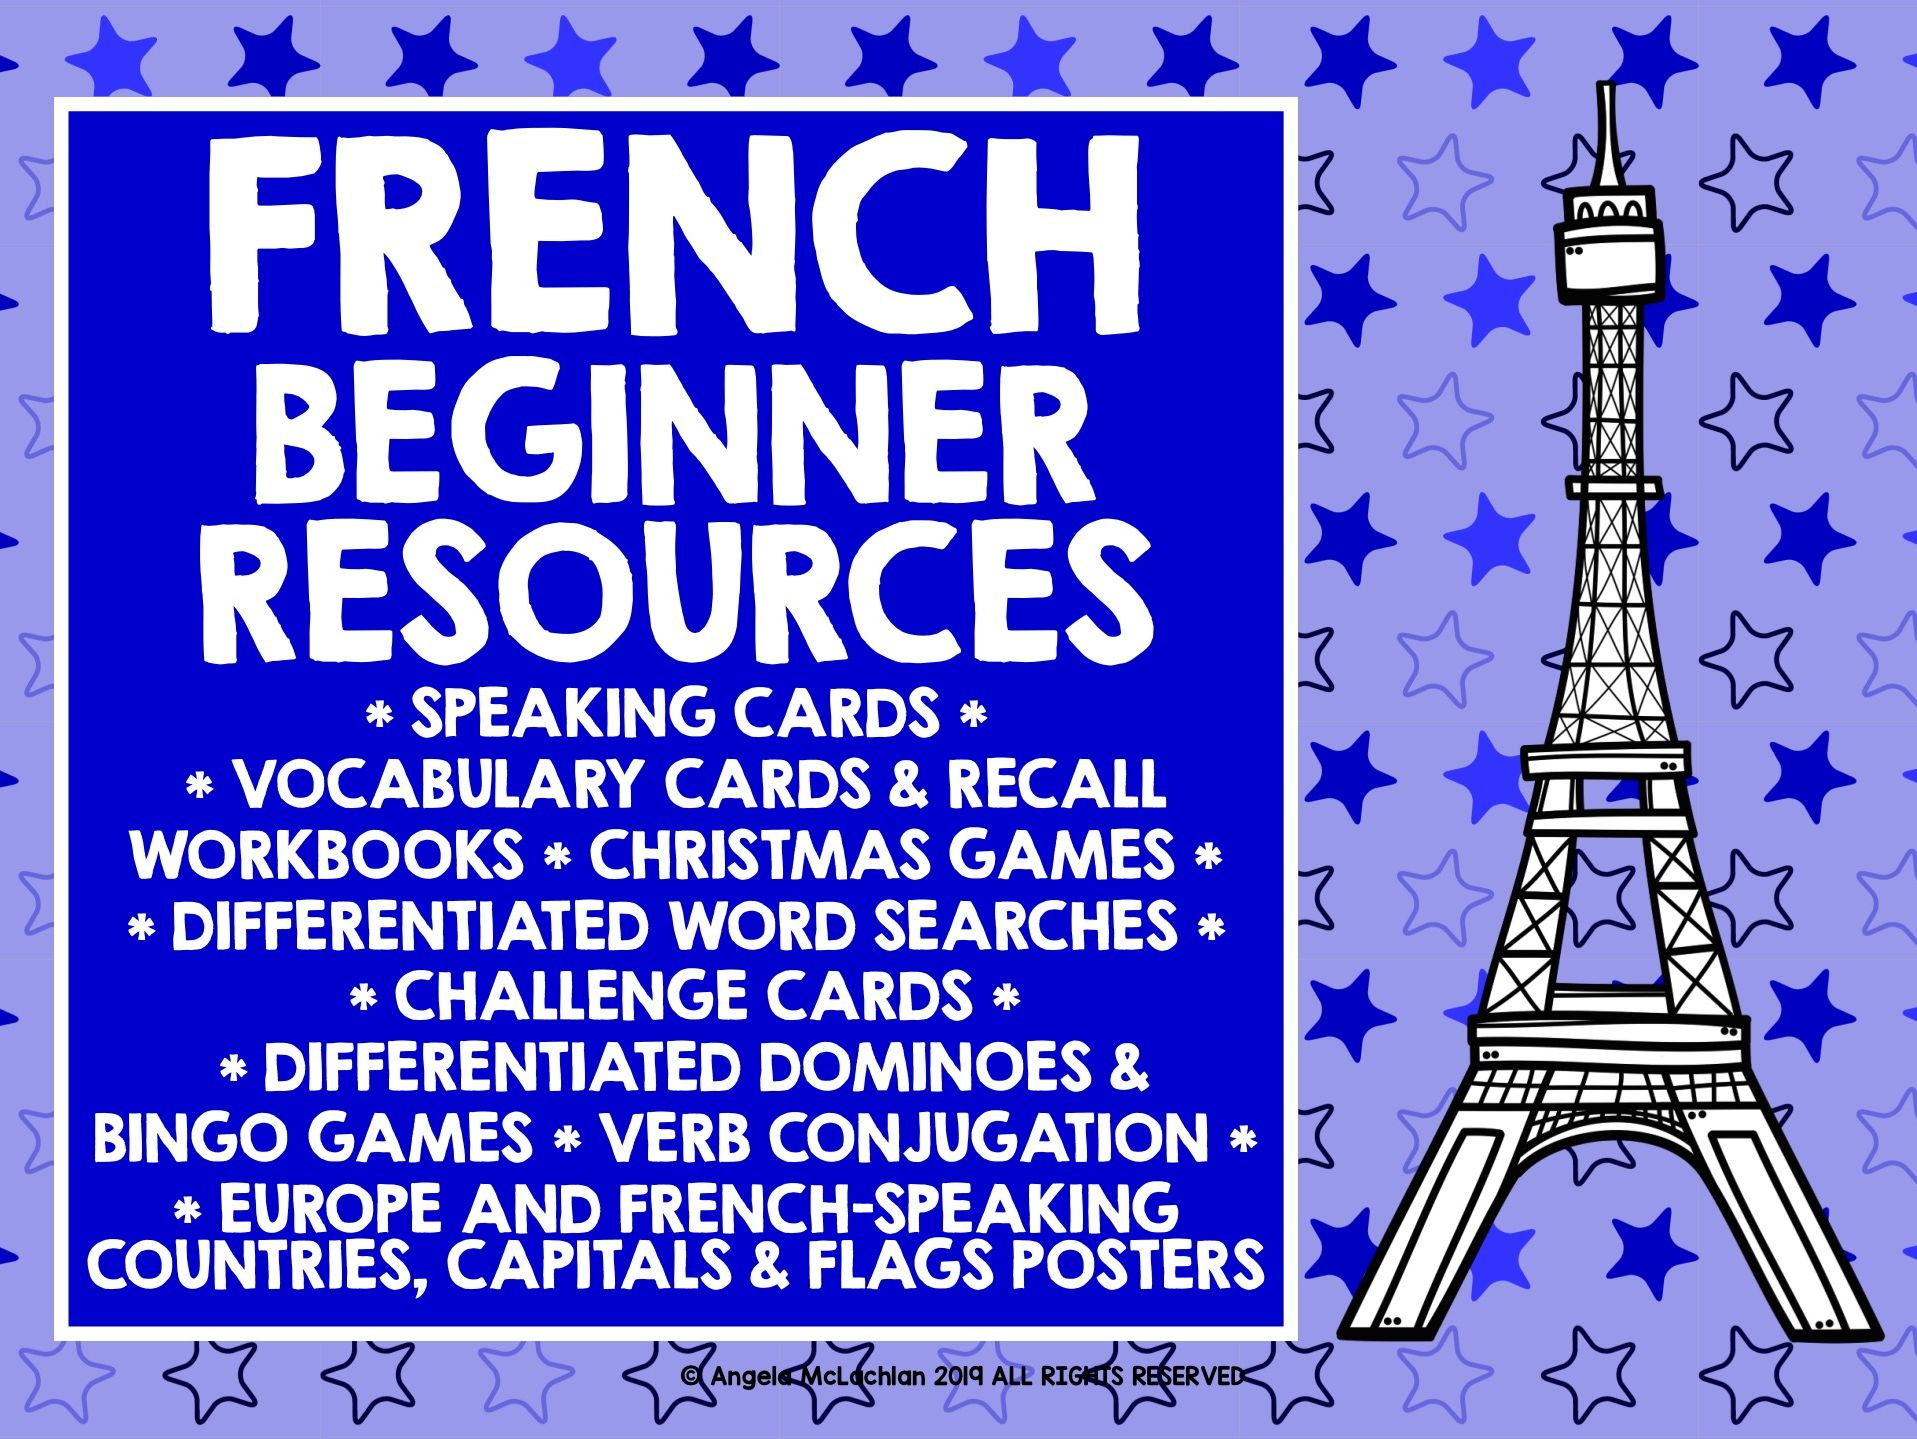 FRENCH BEGINNERS RESOURCES #1